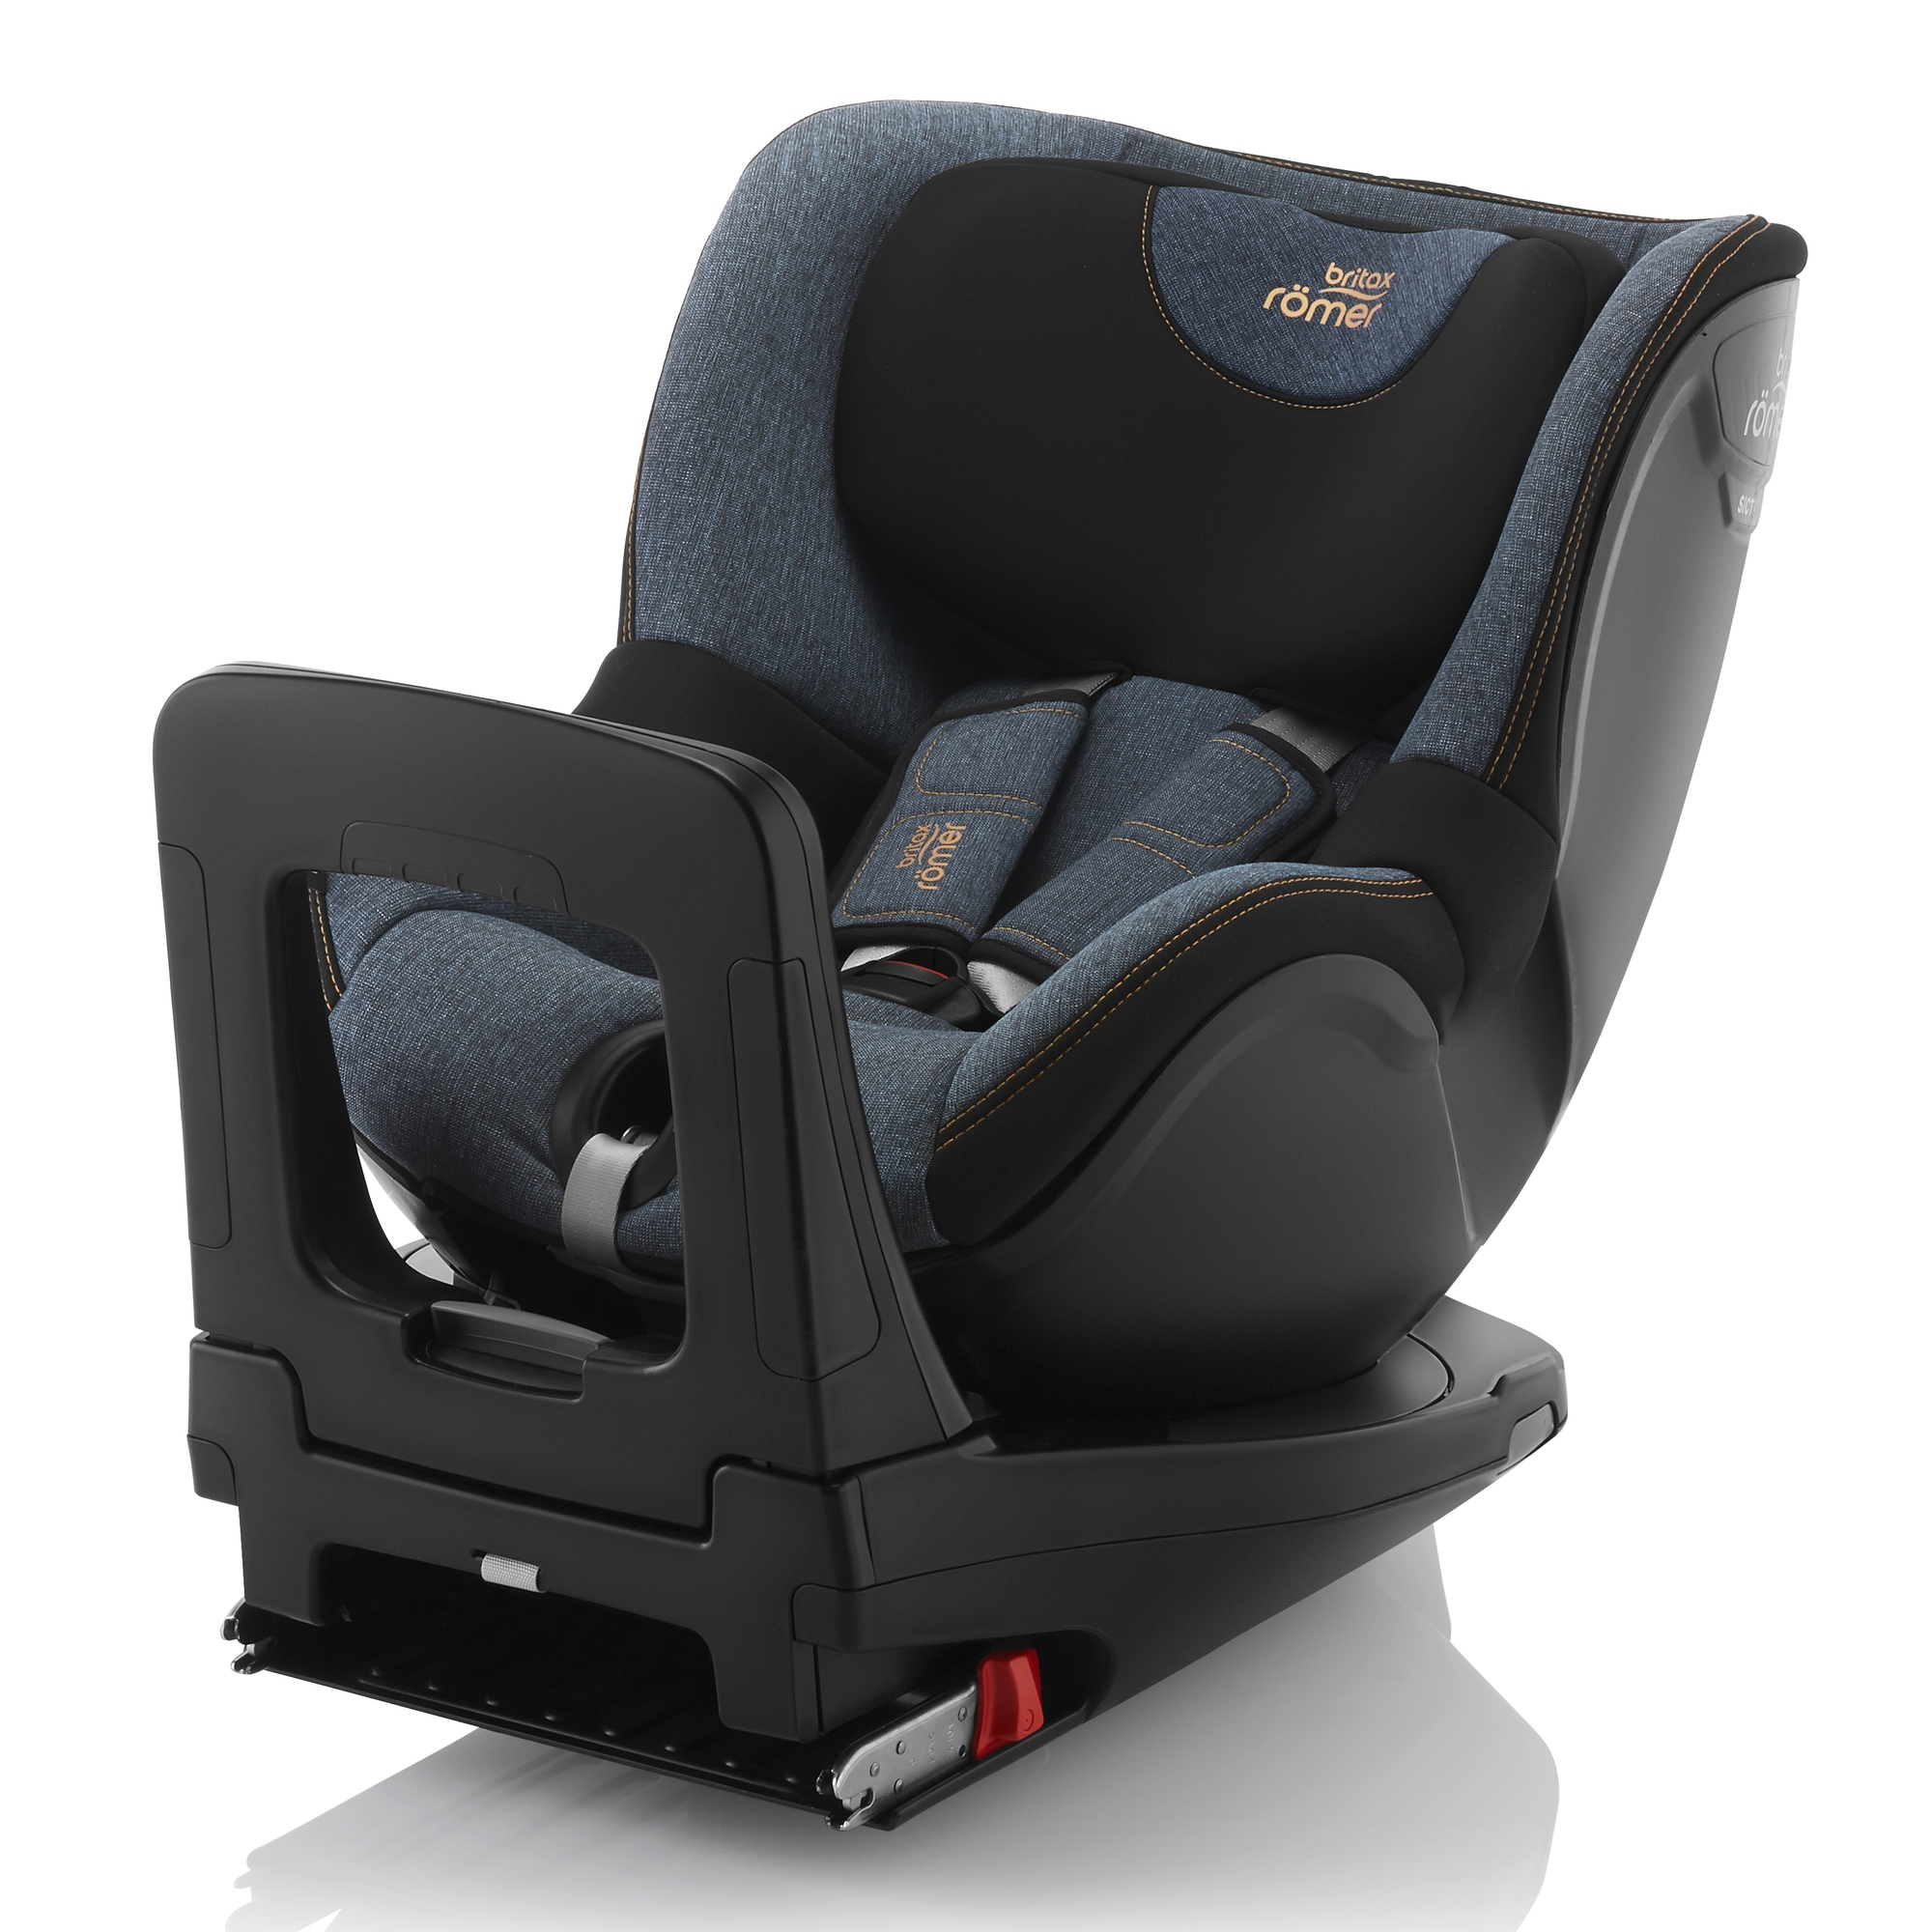 britax r mer dualfix i size die zwergperten babyschalen reboarder kindersitze. Black Bedroom Furniture Sets. Home Design Ideas